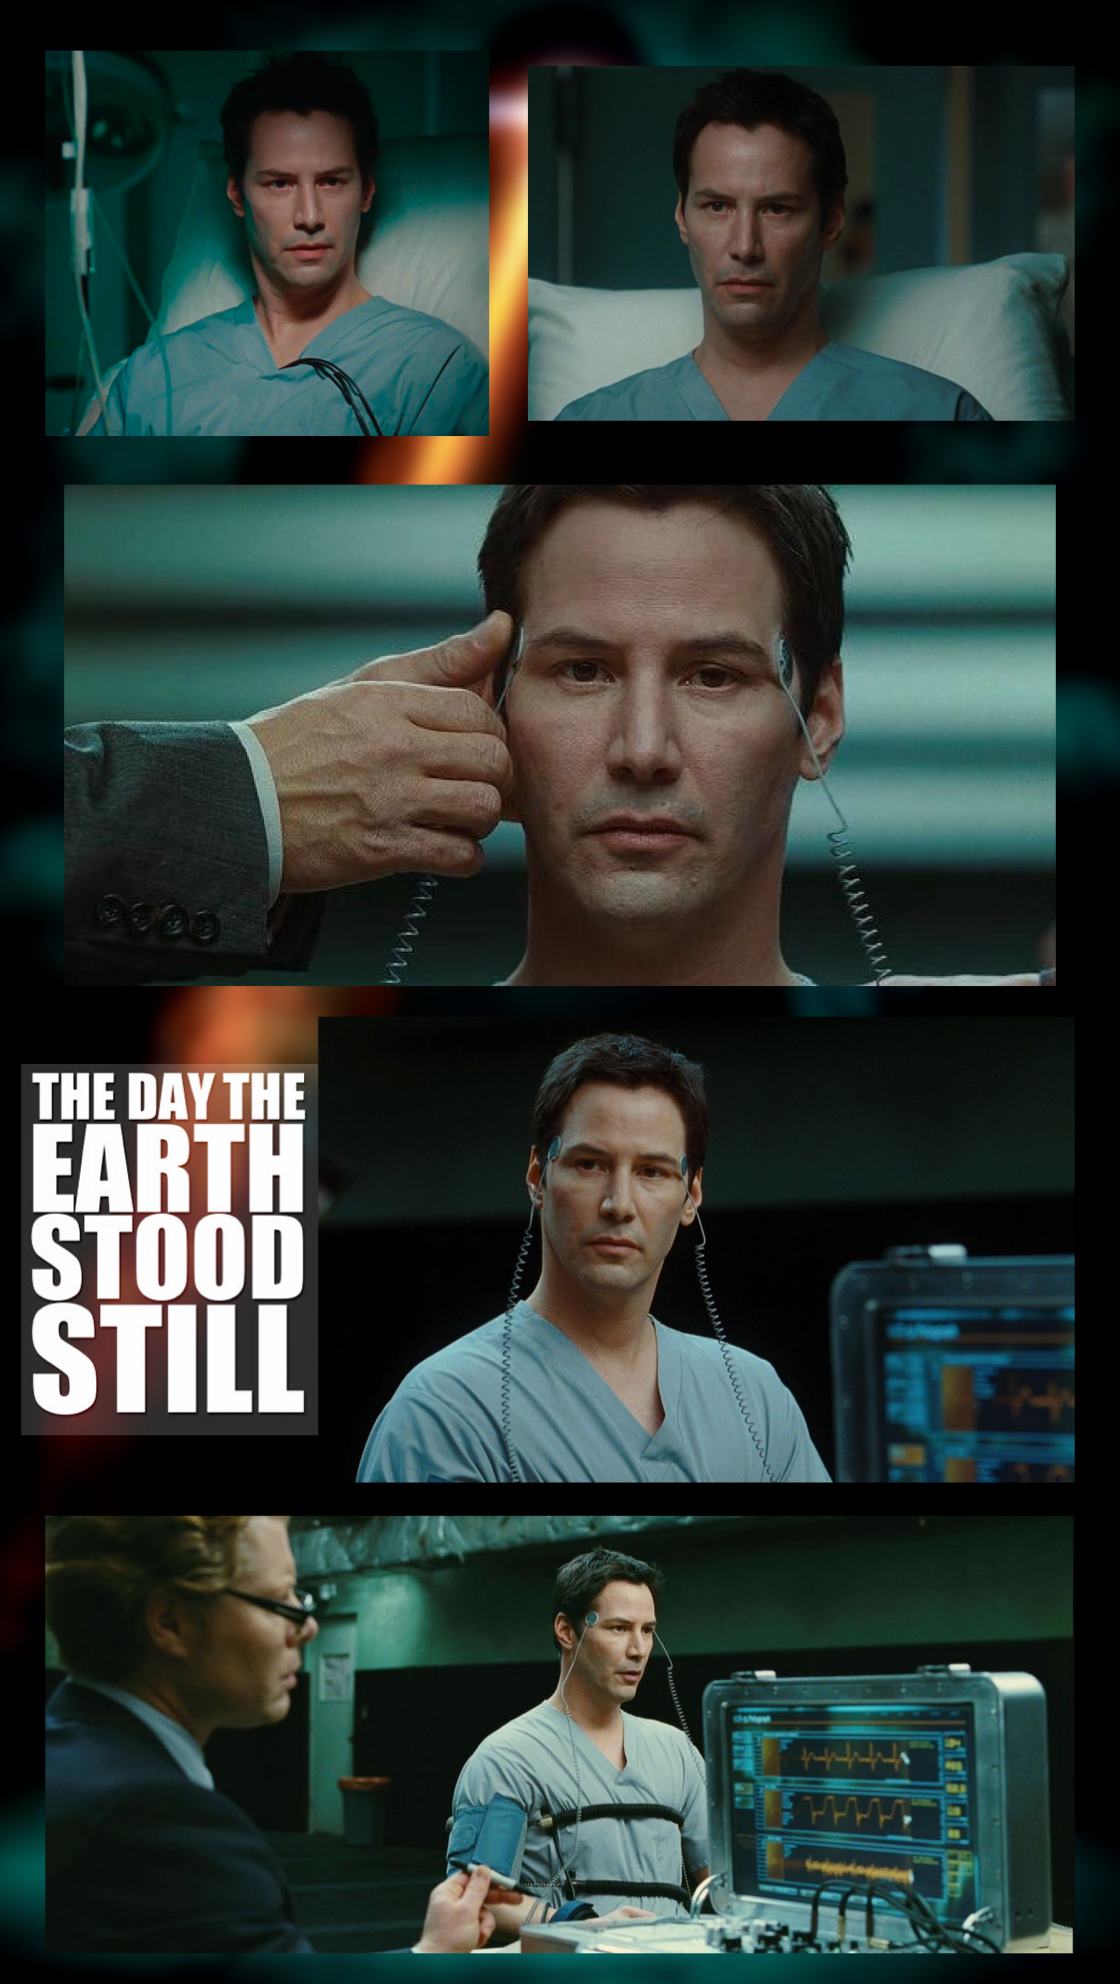 Keanu Reeves The Day The Earth Stood Still 2008 Keanu Reeves Keanu Reaves Taylor Kitsch